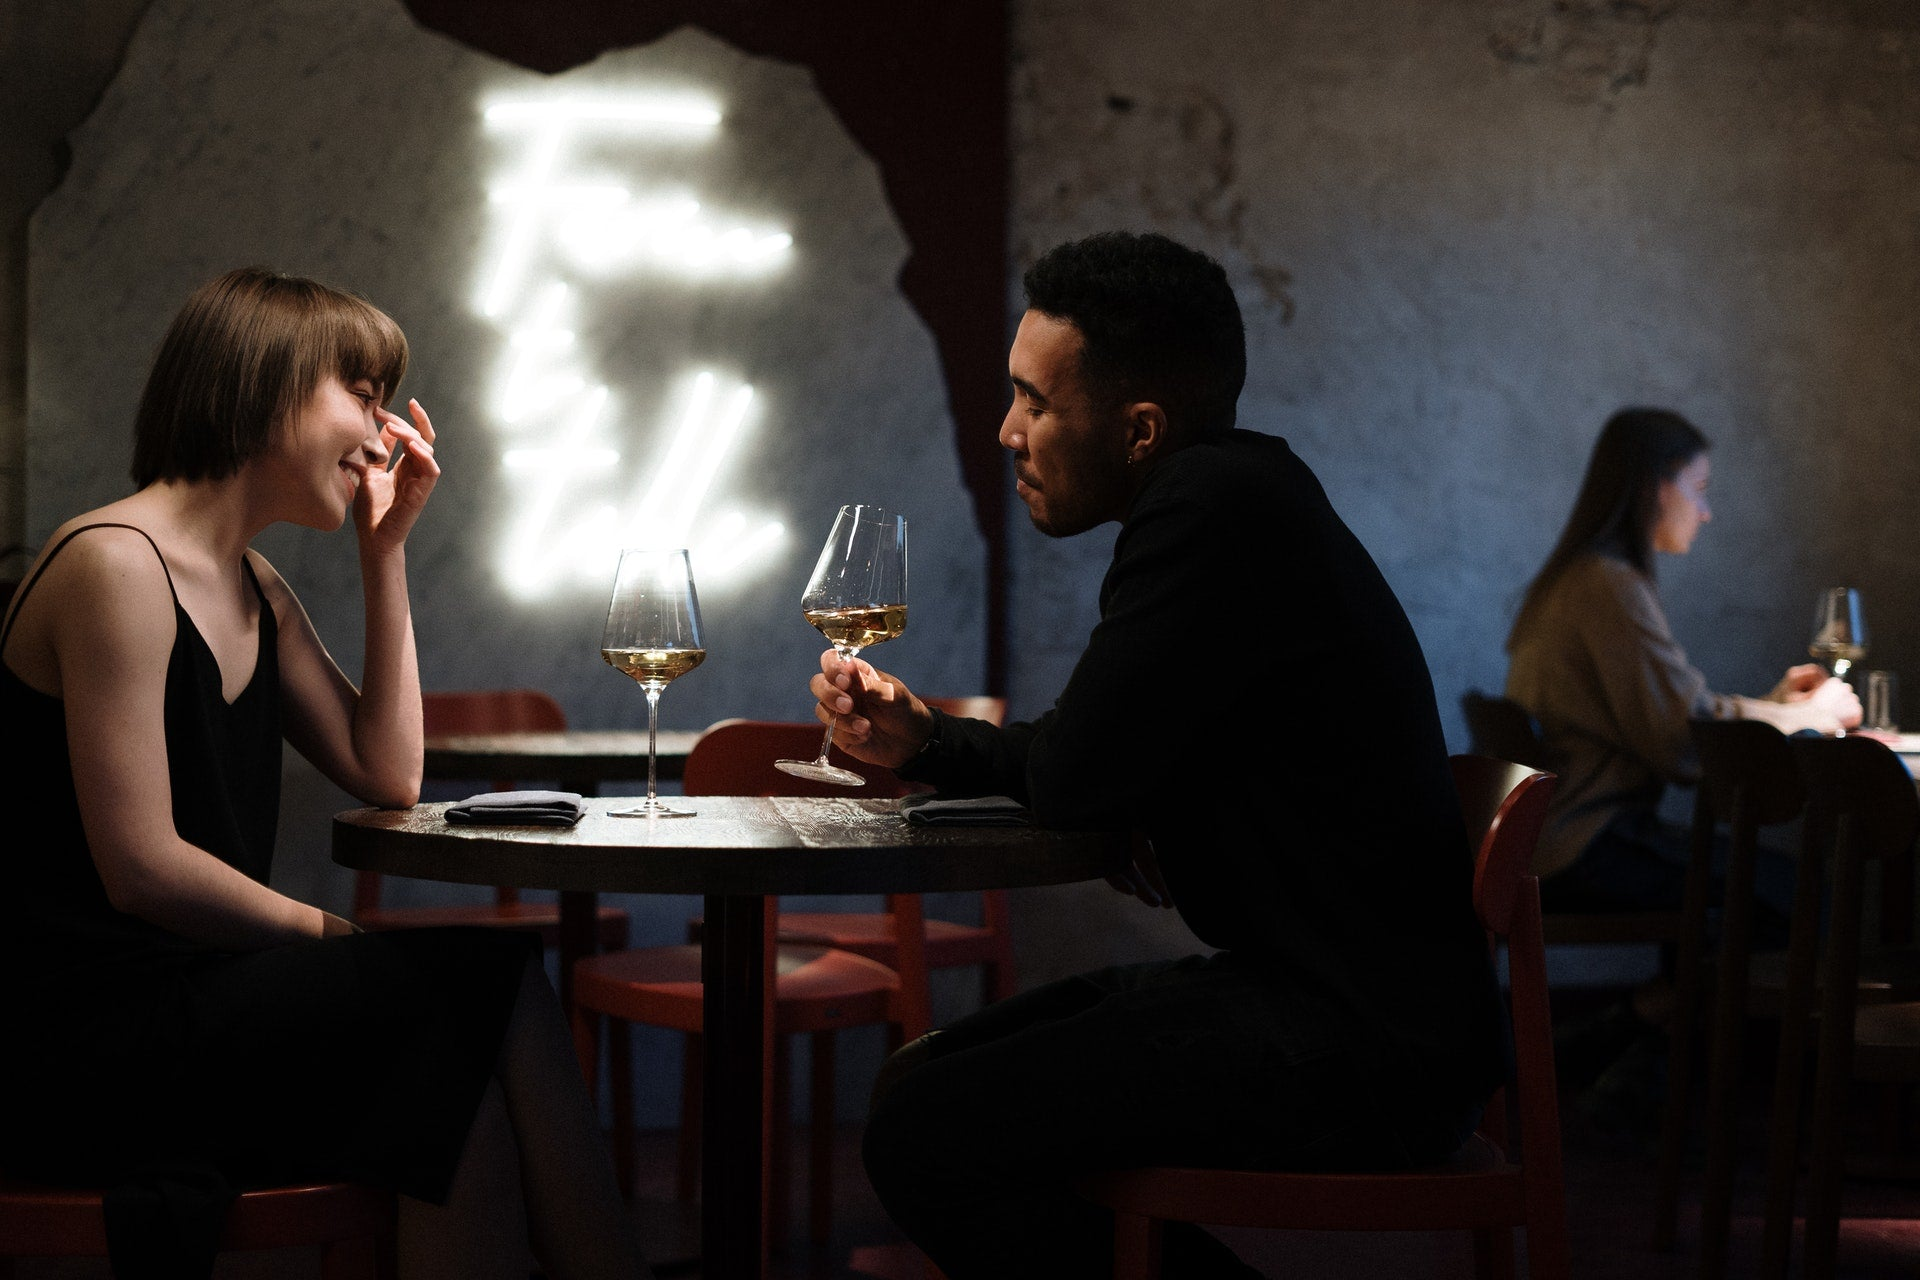 couple in love drinking wine from glasses